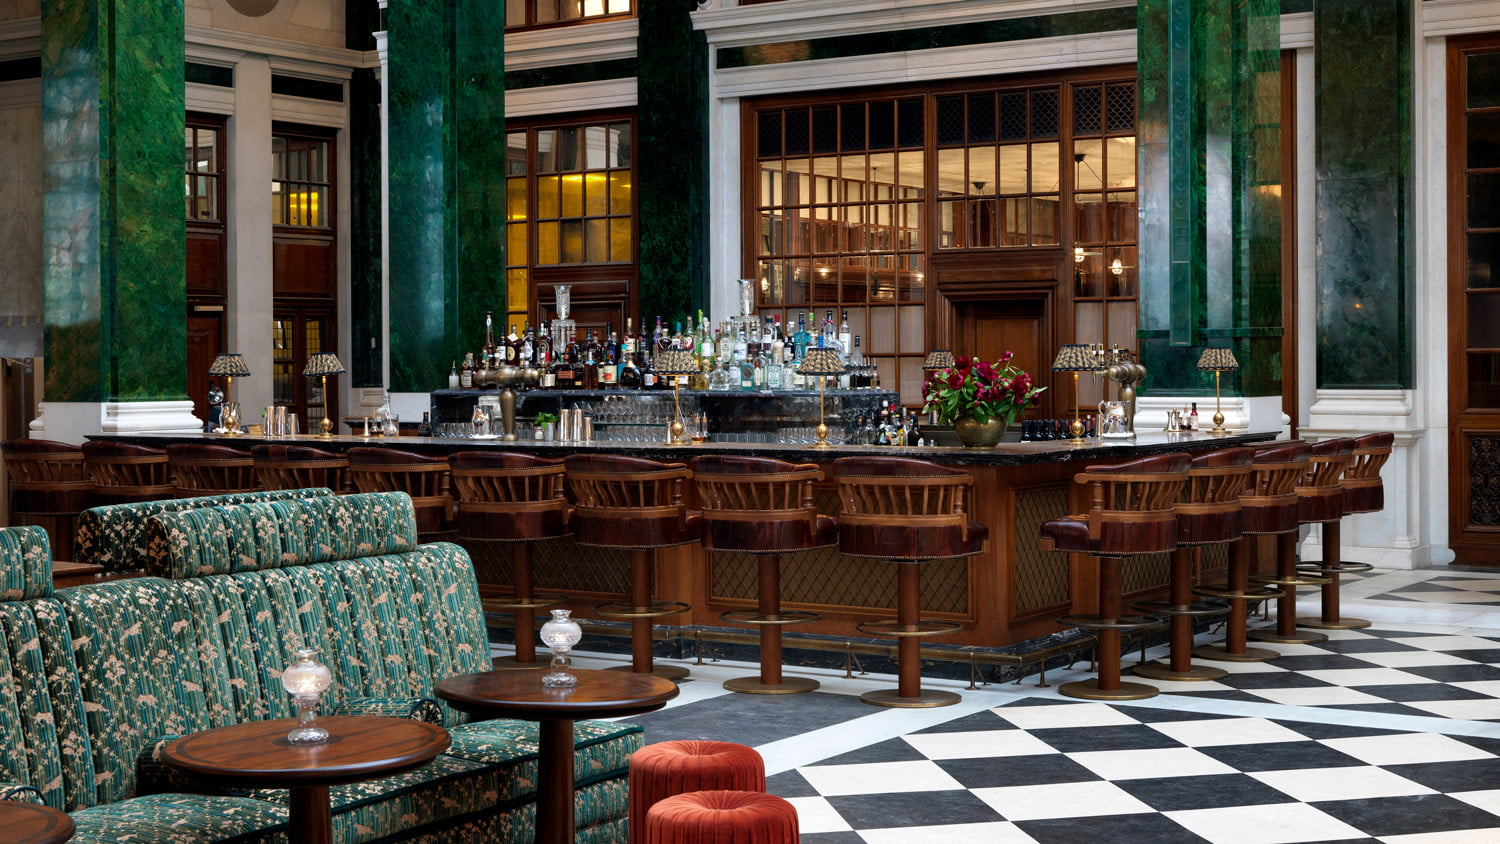 hotel review the ned london copyright nickel bar 170428 sb hr 01